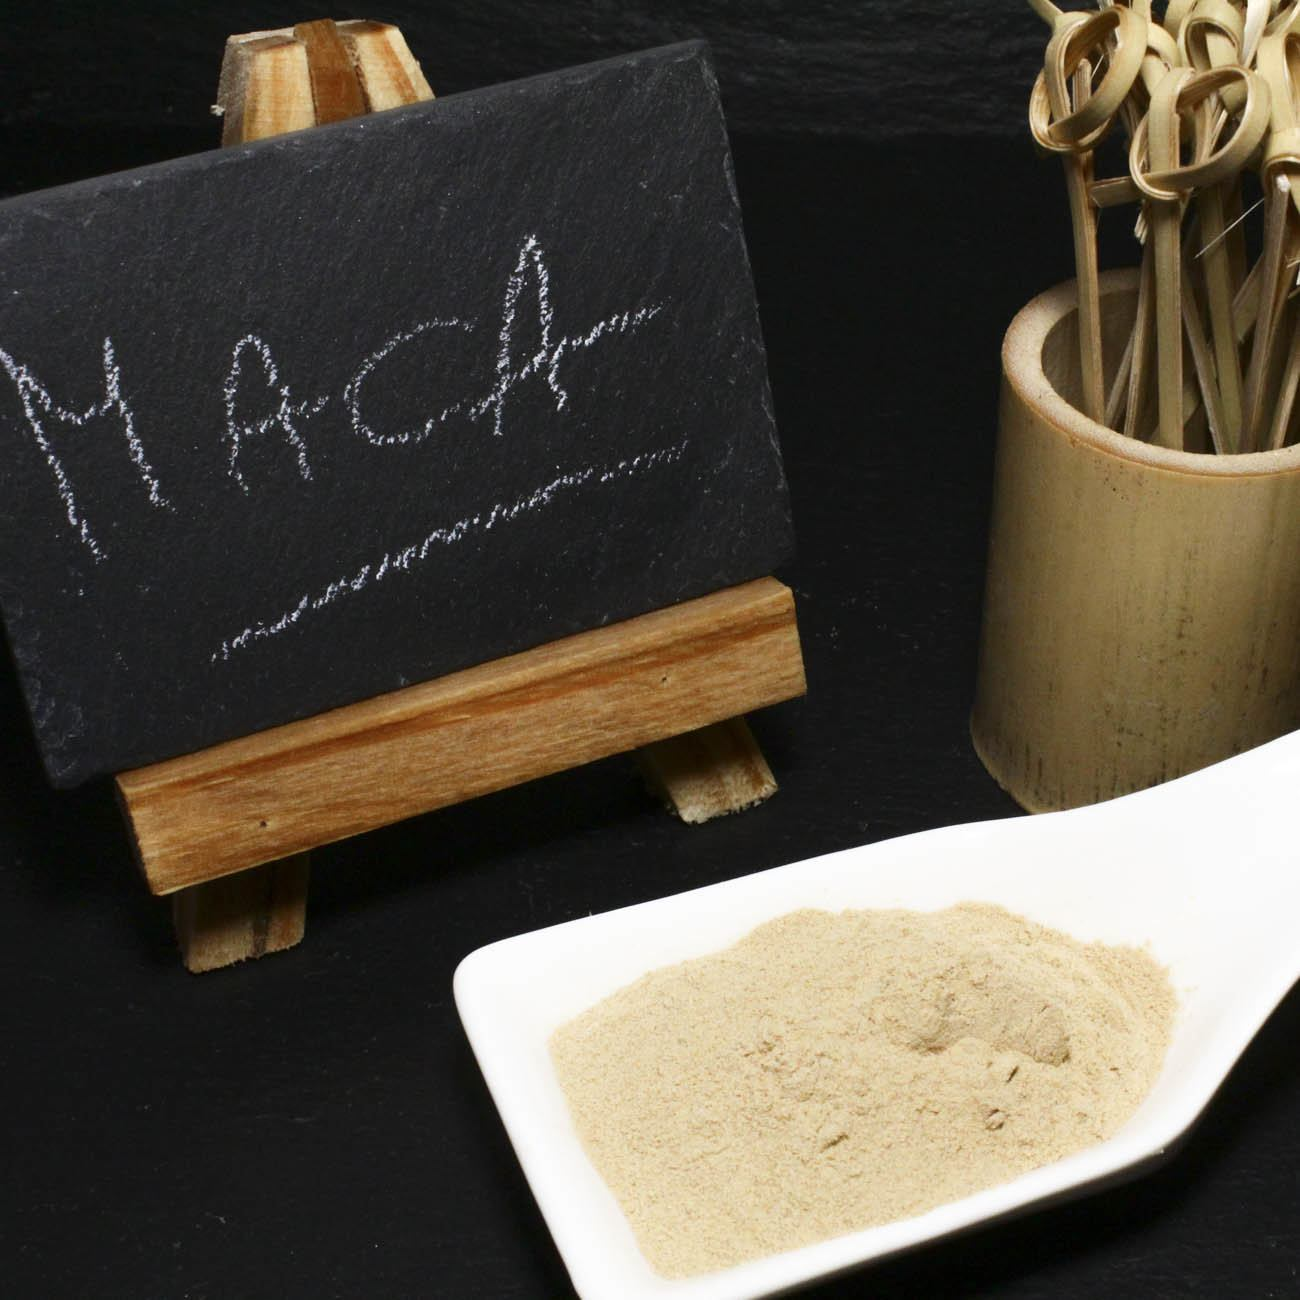 Maca<br/>In Polvere Cruda Bio - Maca Powder Raw Organic - 1500g